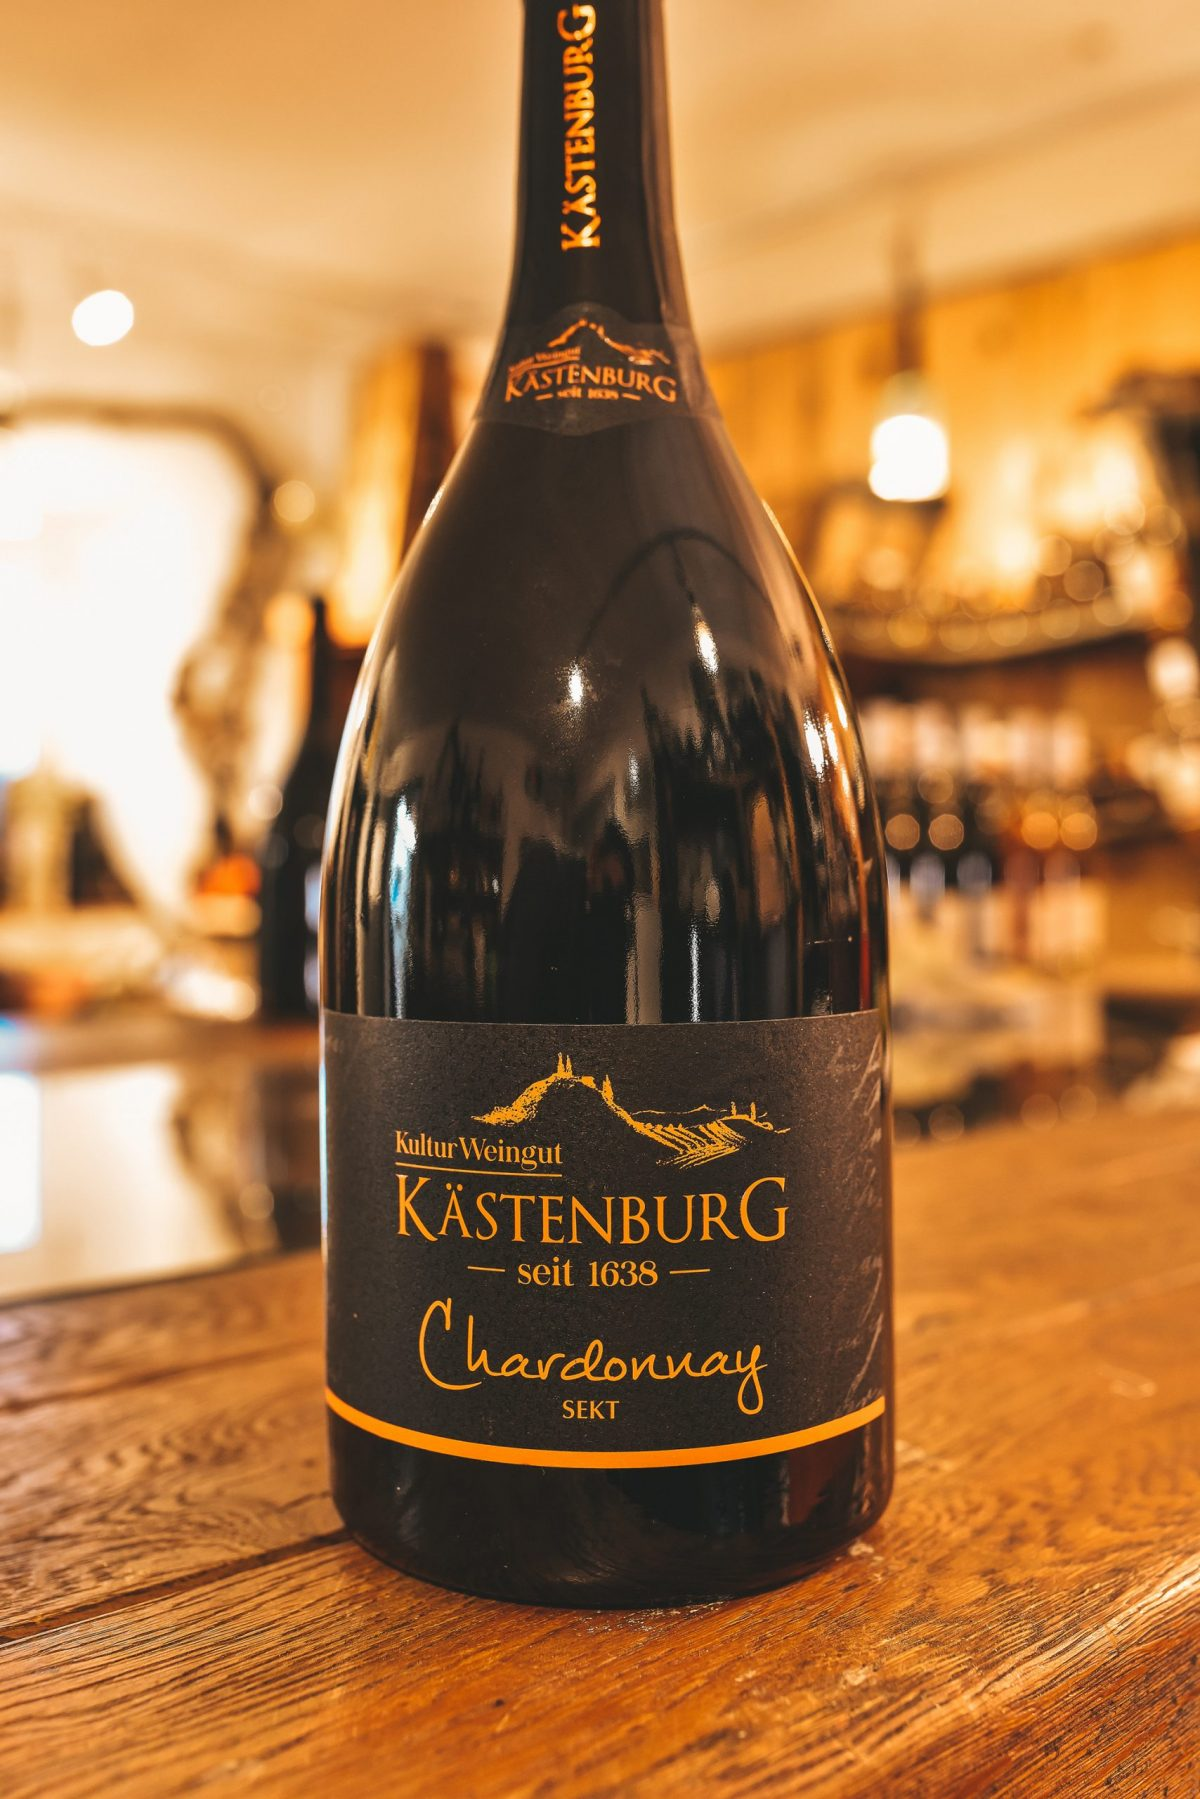 Chardonnay Sekt scaled | Kästenburg